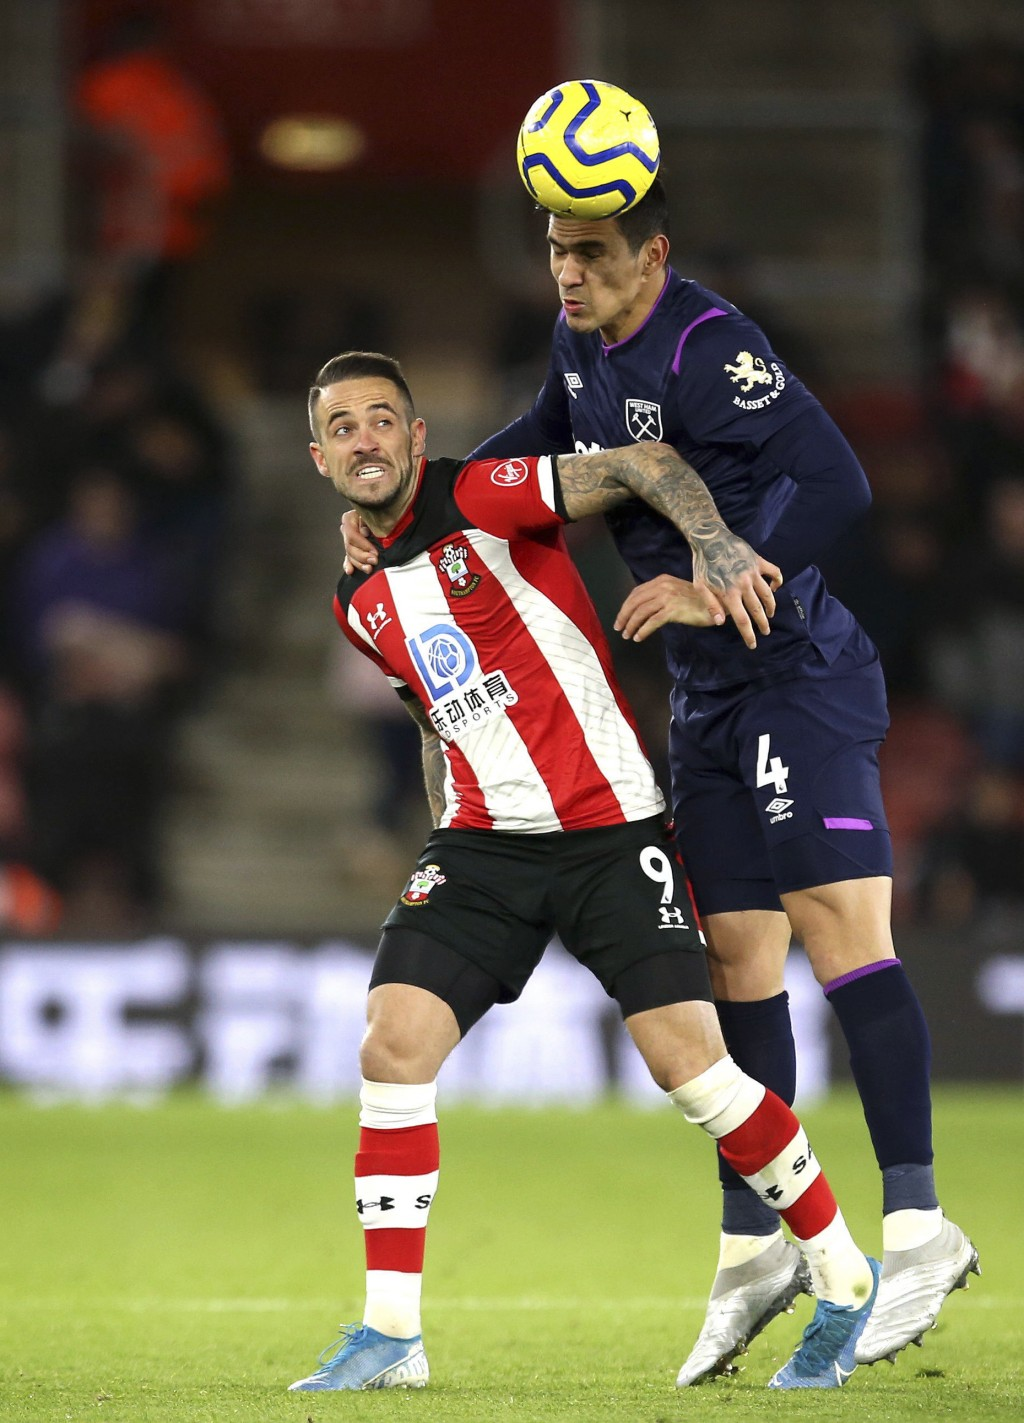 Southampton's Danny Ings, left, and West Ham United's Fabian Balbuena during their English Premier League soccer match at St Mary's Stadium in Southam...